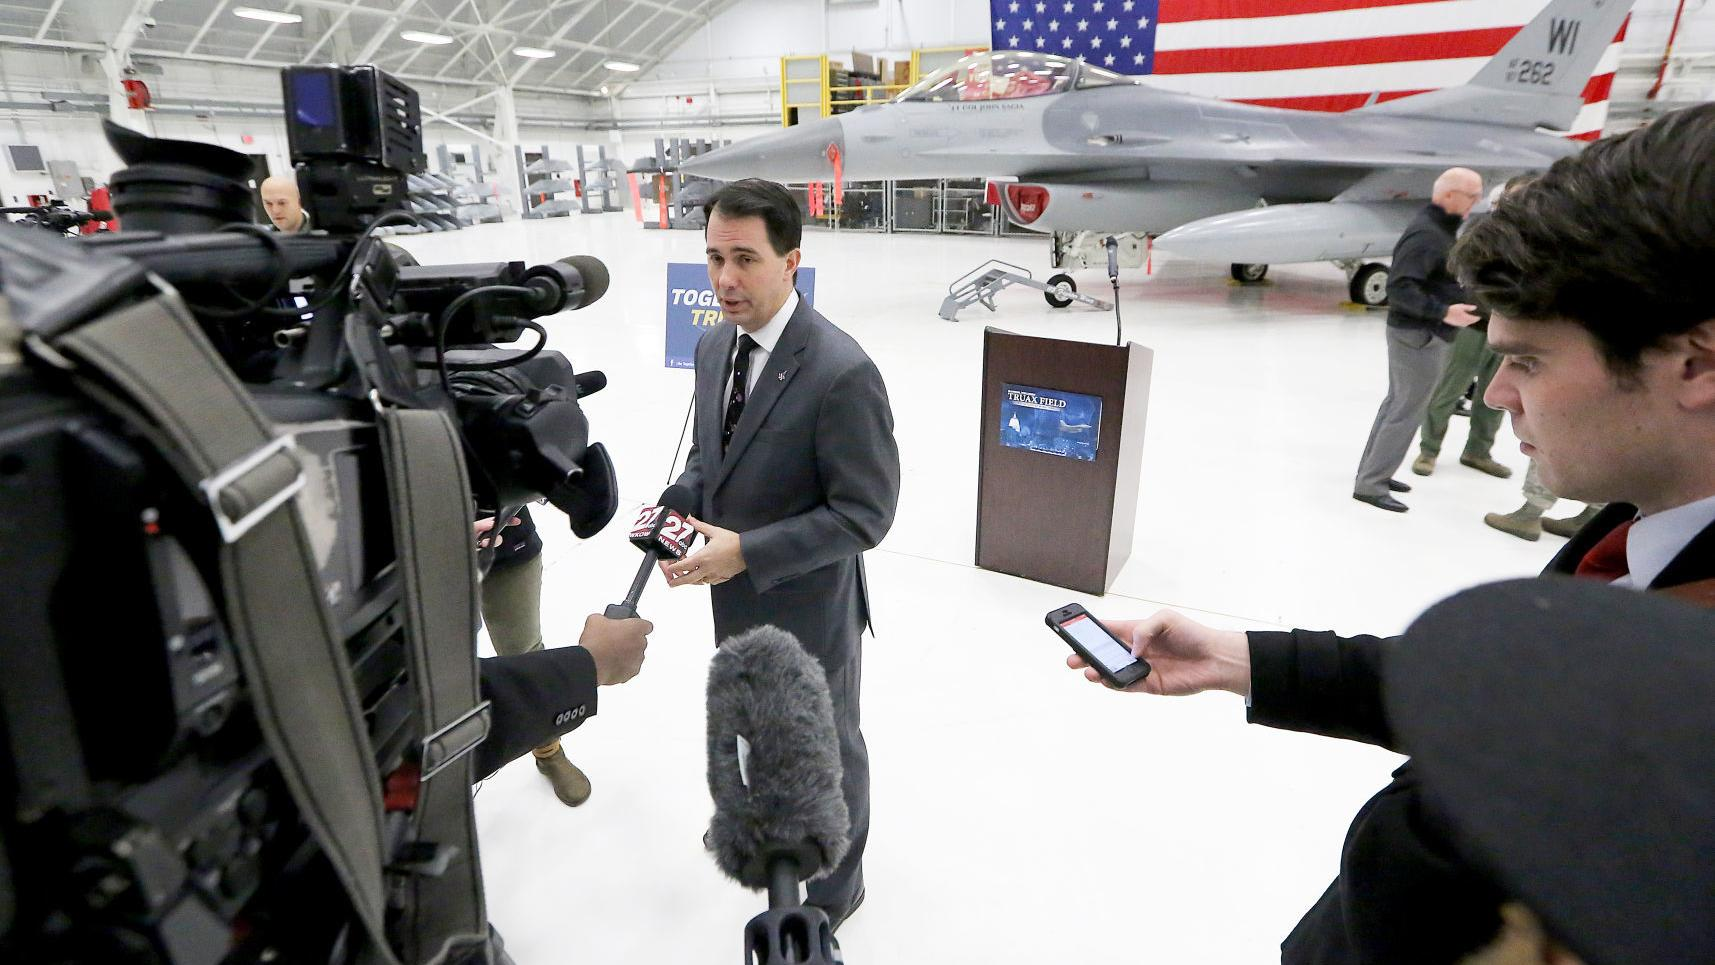 Scott Walker's flights in years after presidential run cost state taxpayers $818,000